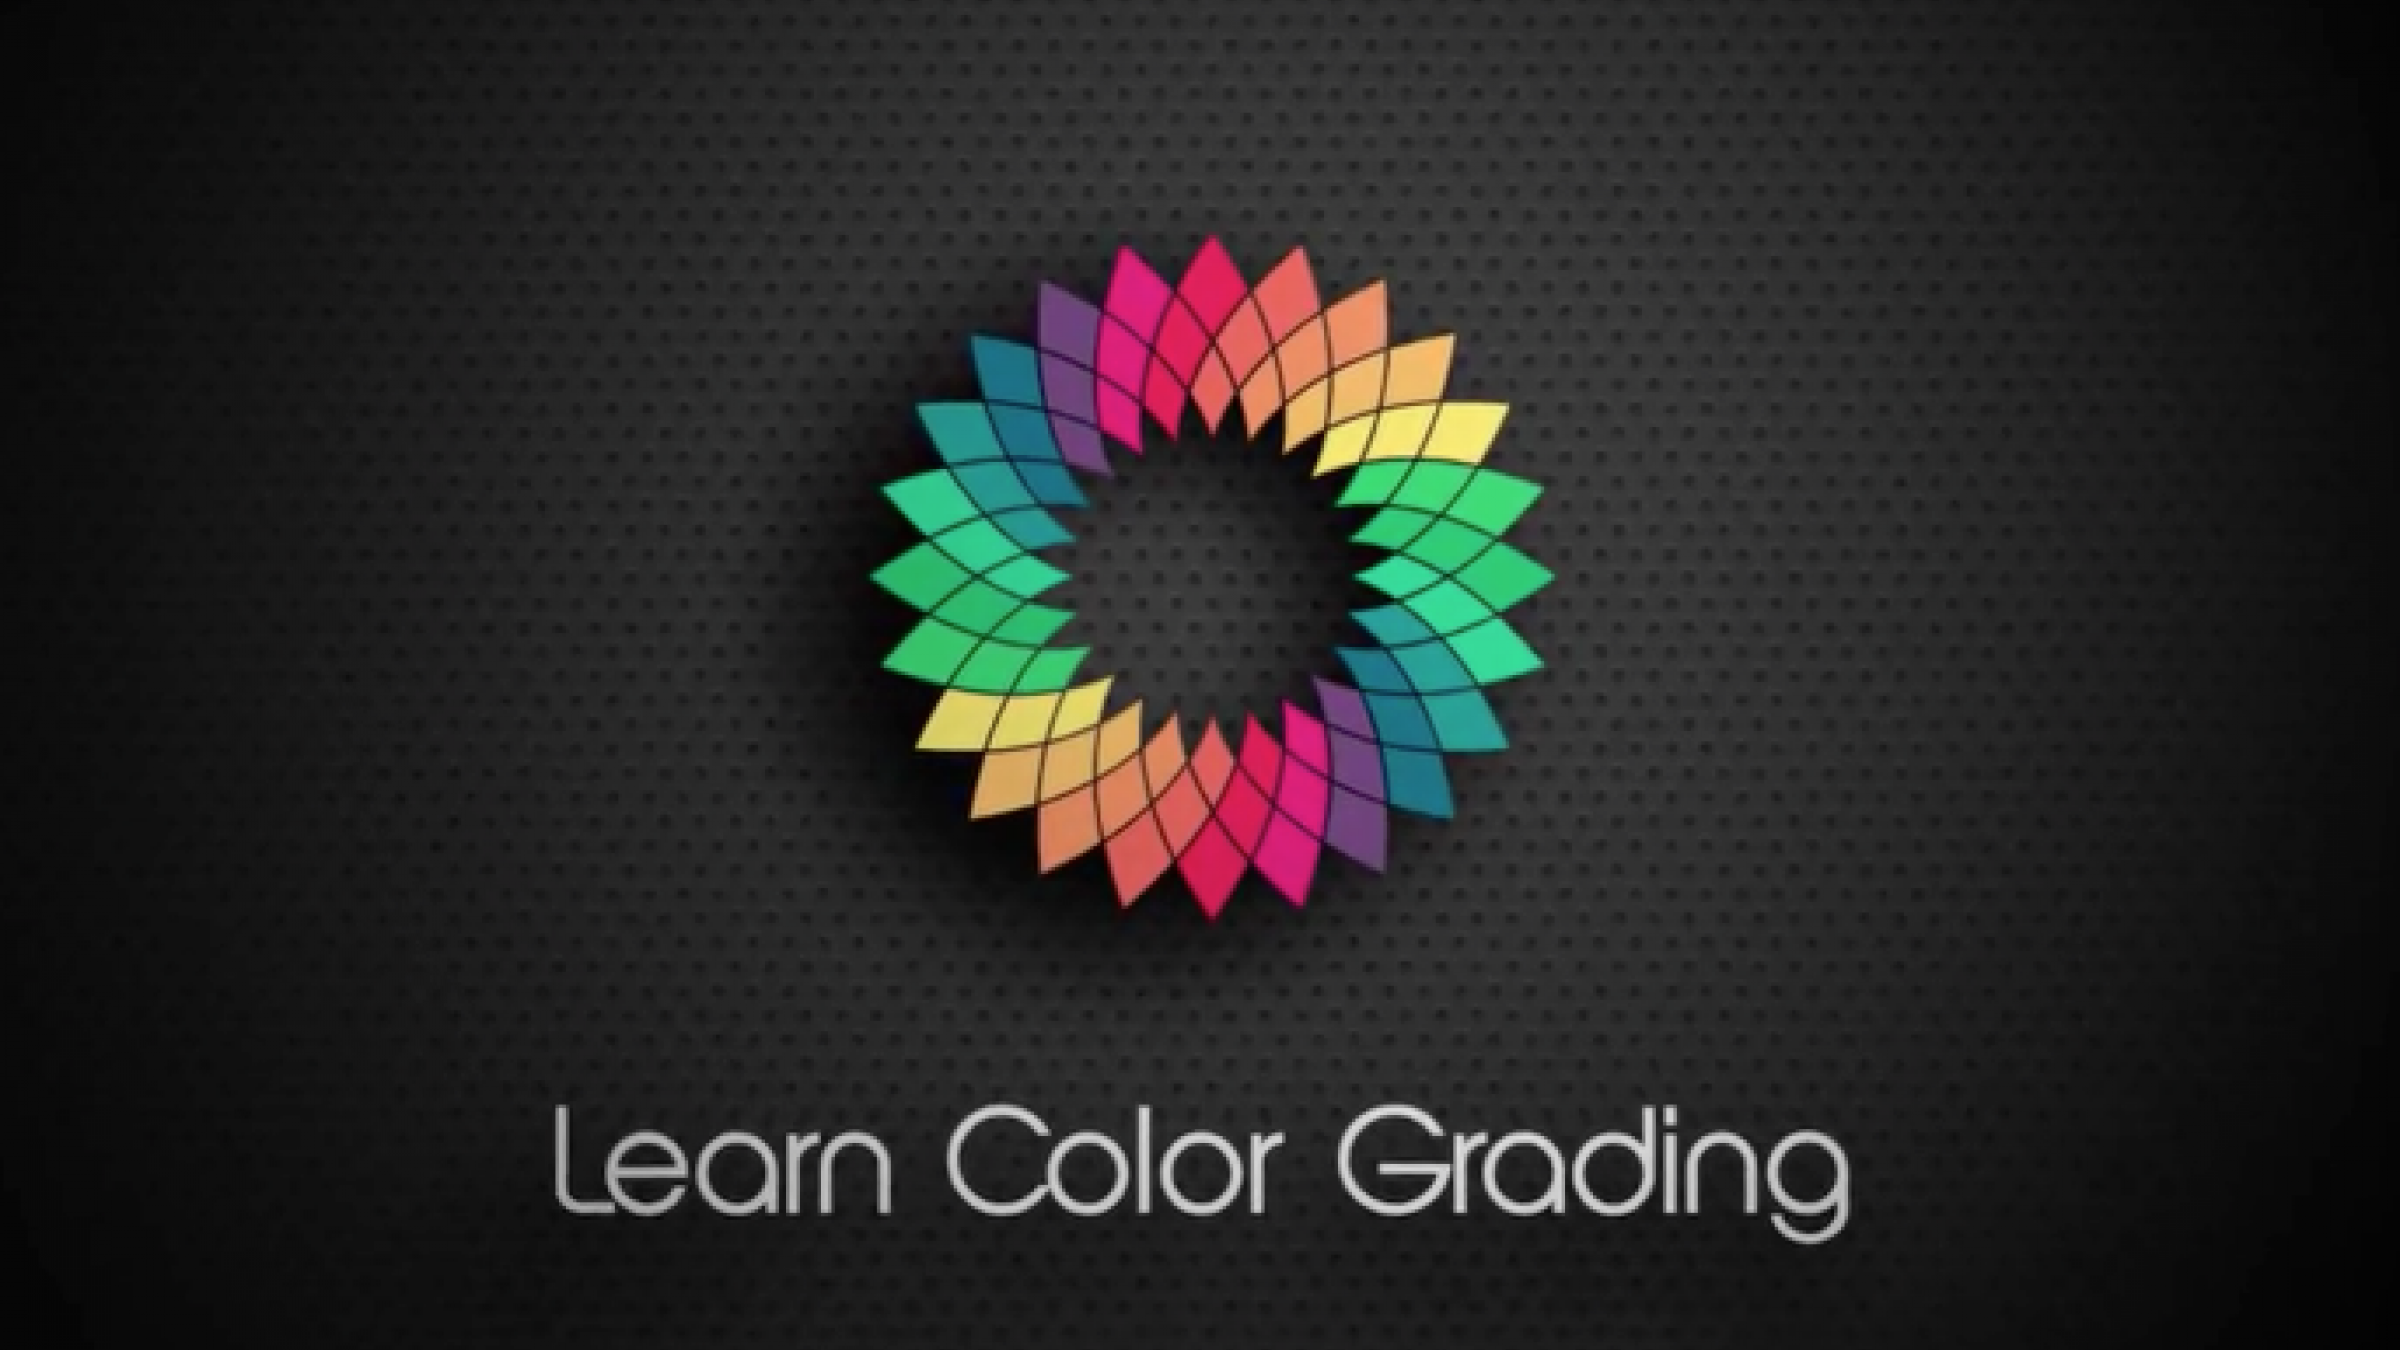 This DaVinci Resolve Course, Now 75% Off, Will Get You Color